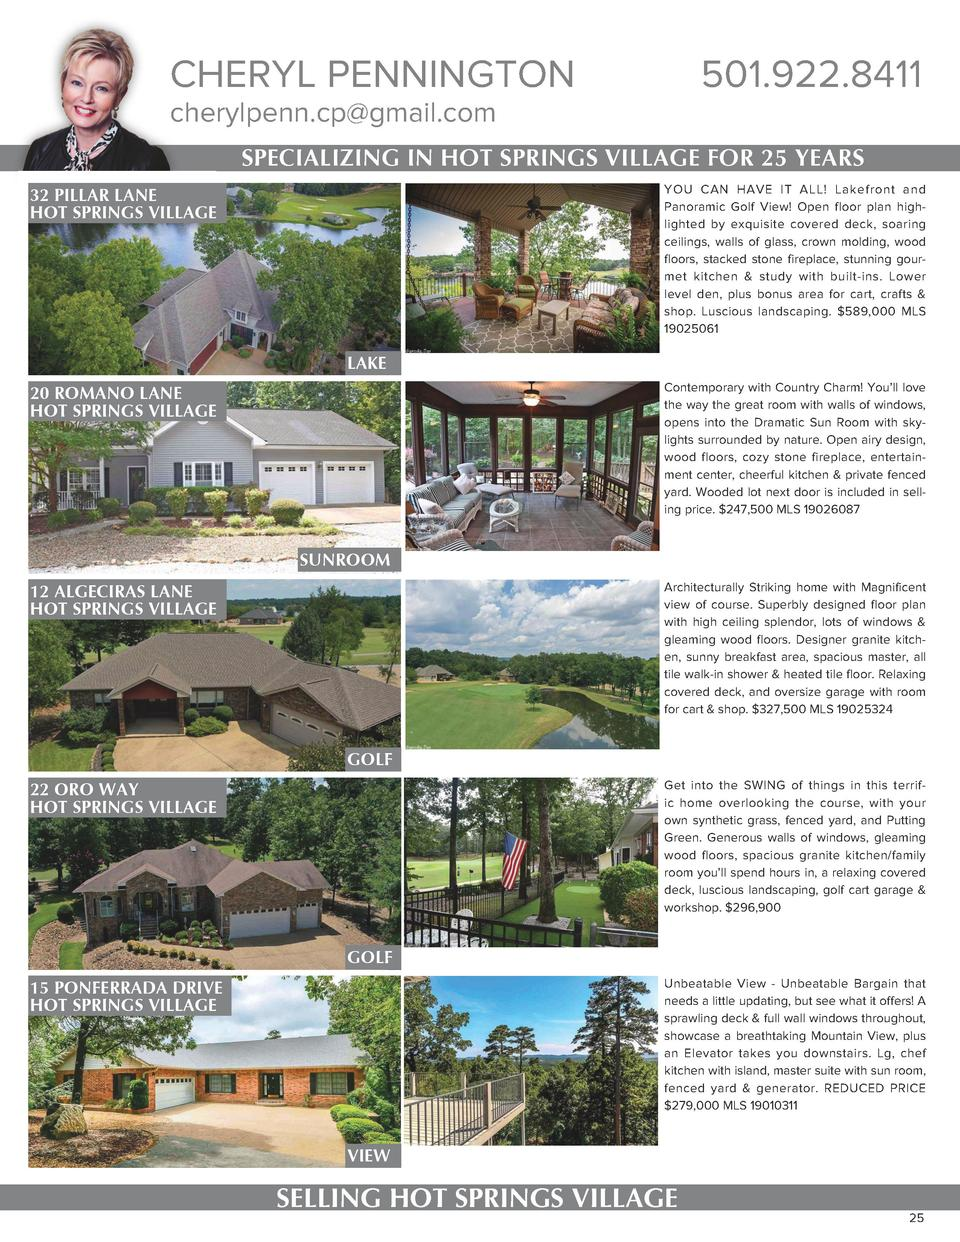 CHERYL PENNINGTON  501.922.8411  cherylpenn.cp gmail.com  SPECIALIZING IN HOT SPRINGS VILLAGE FOR 25 YEARS YOU CAN HAVE IT...